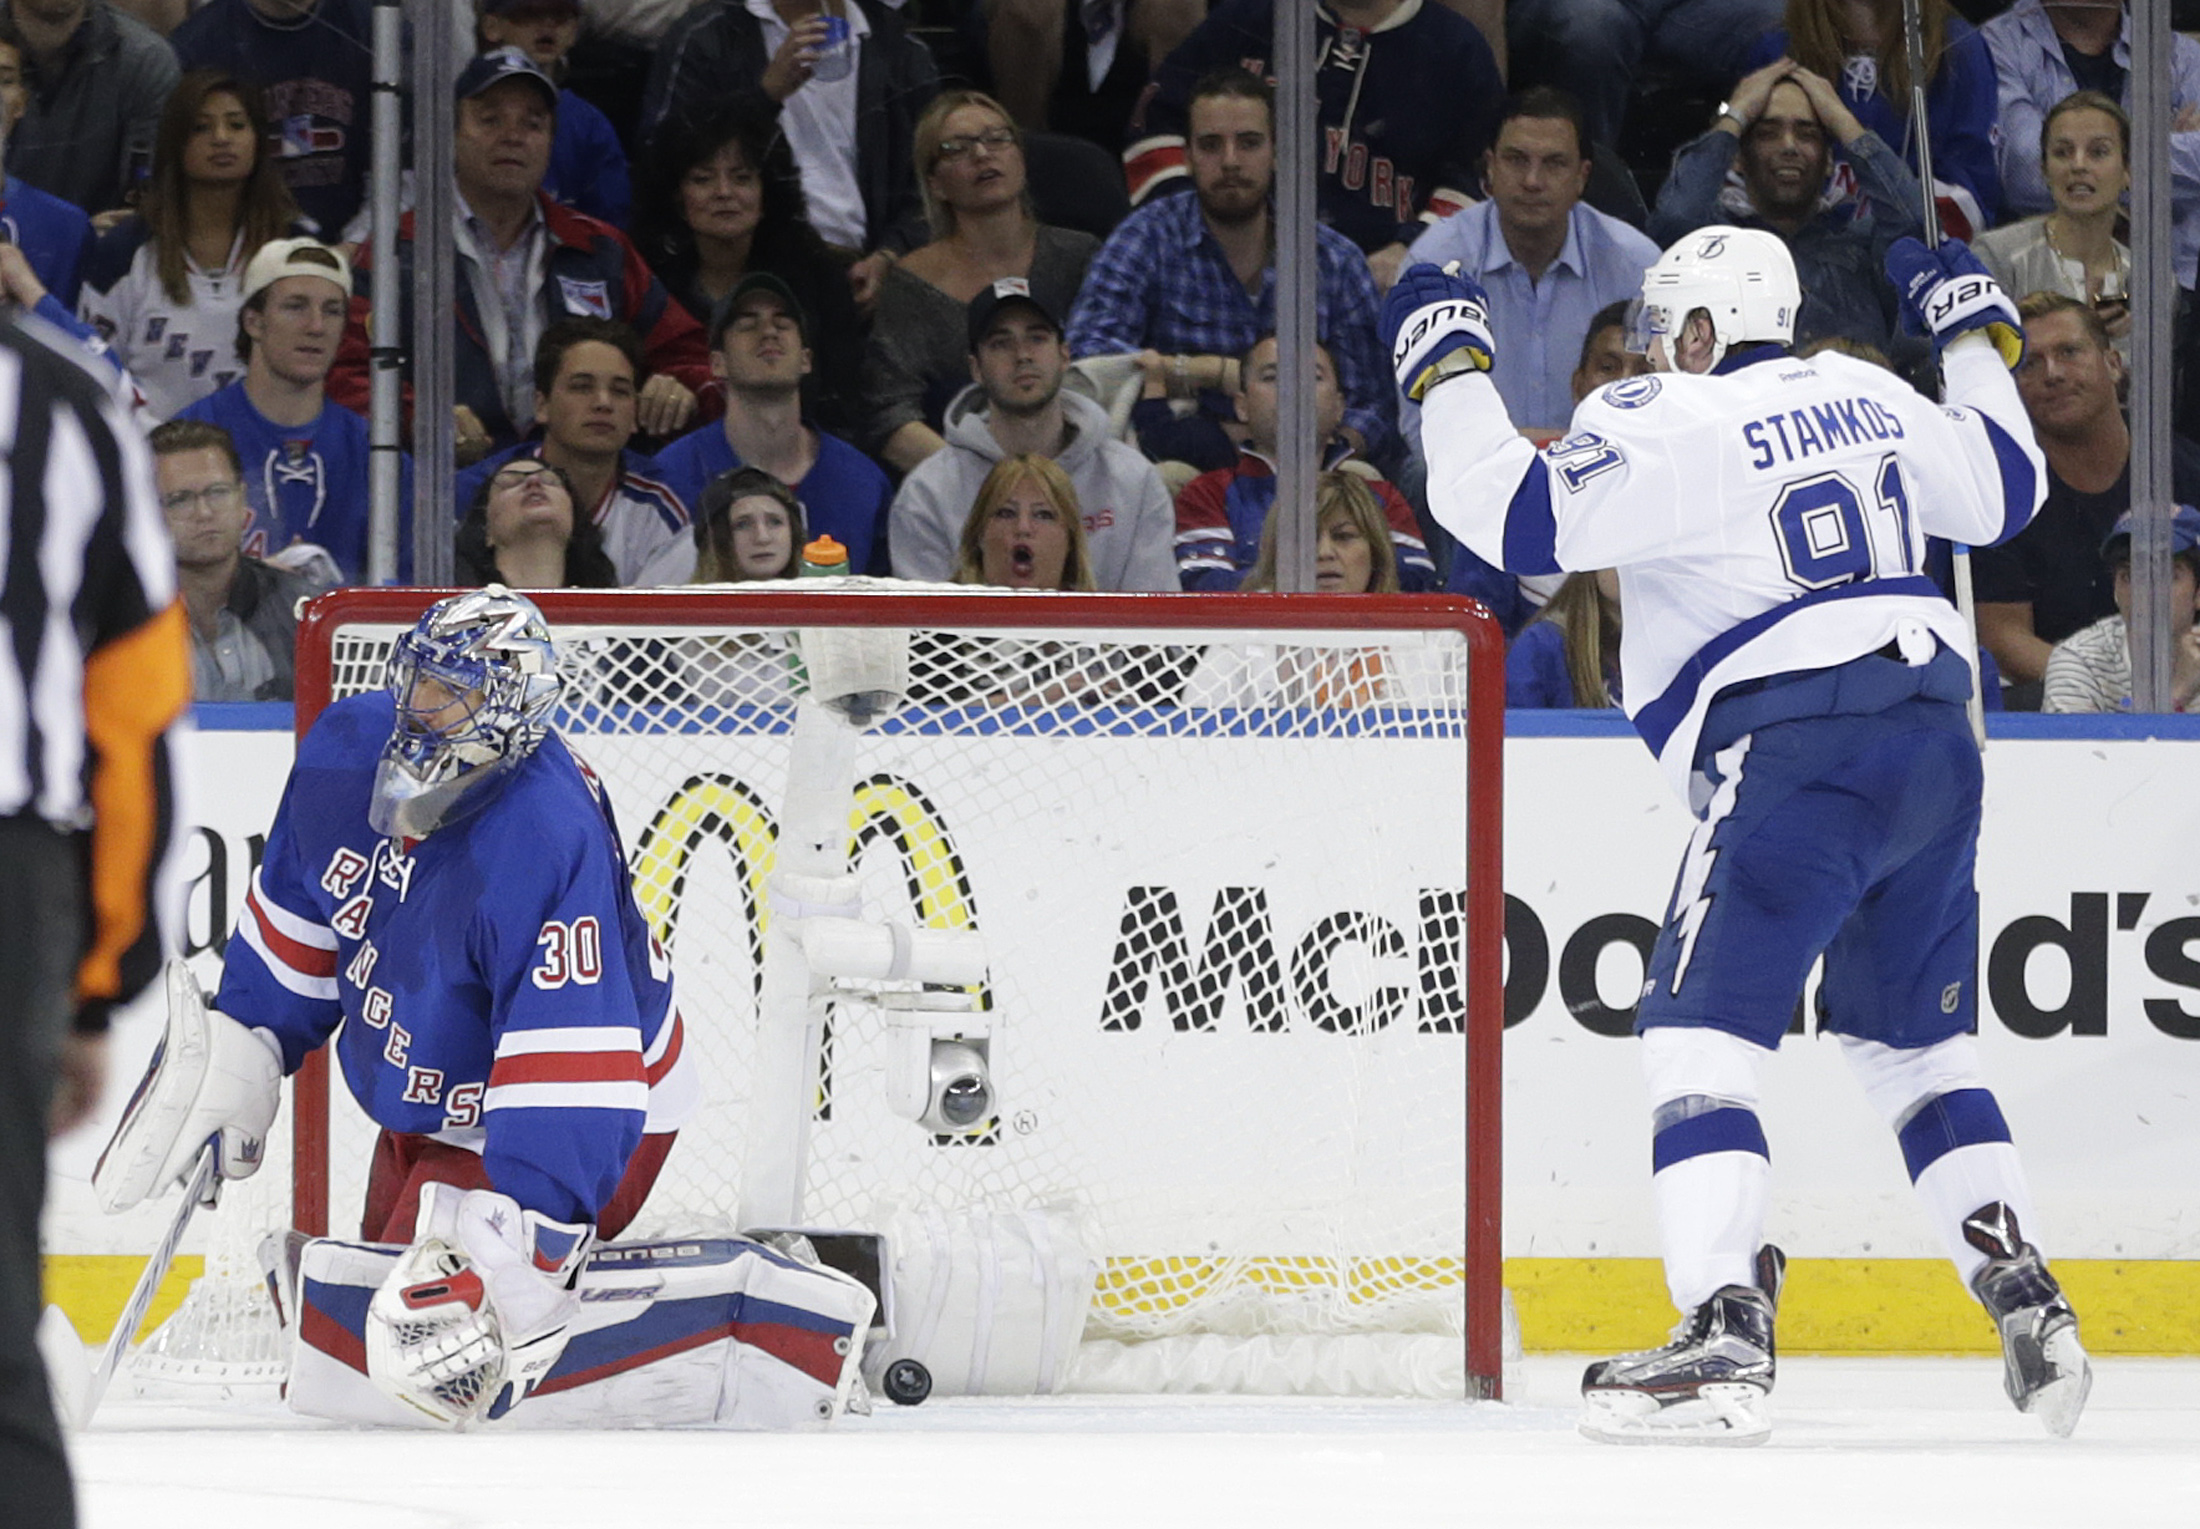 Tampa Bay Lightning center Steven Stamkos (91) reacts after scoring against New York Rangers goalie Henrik Lundqvist (30) during the second period of Game 5 of the Eastern Conference final during the NHL hockey Stanley Cup playoffs, Sunday, May 24, 2015,